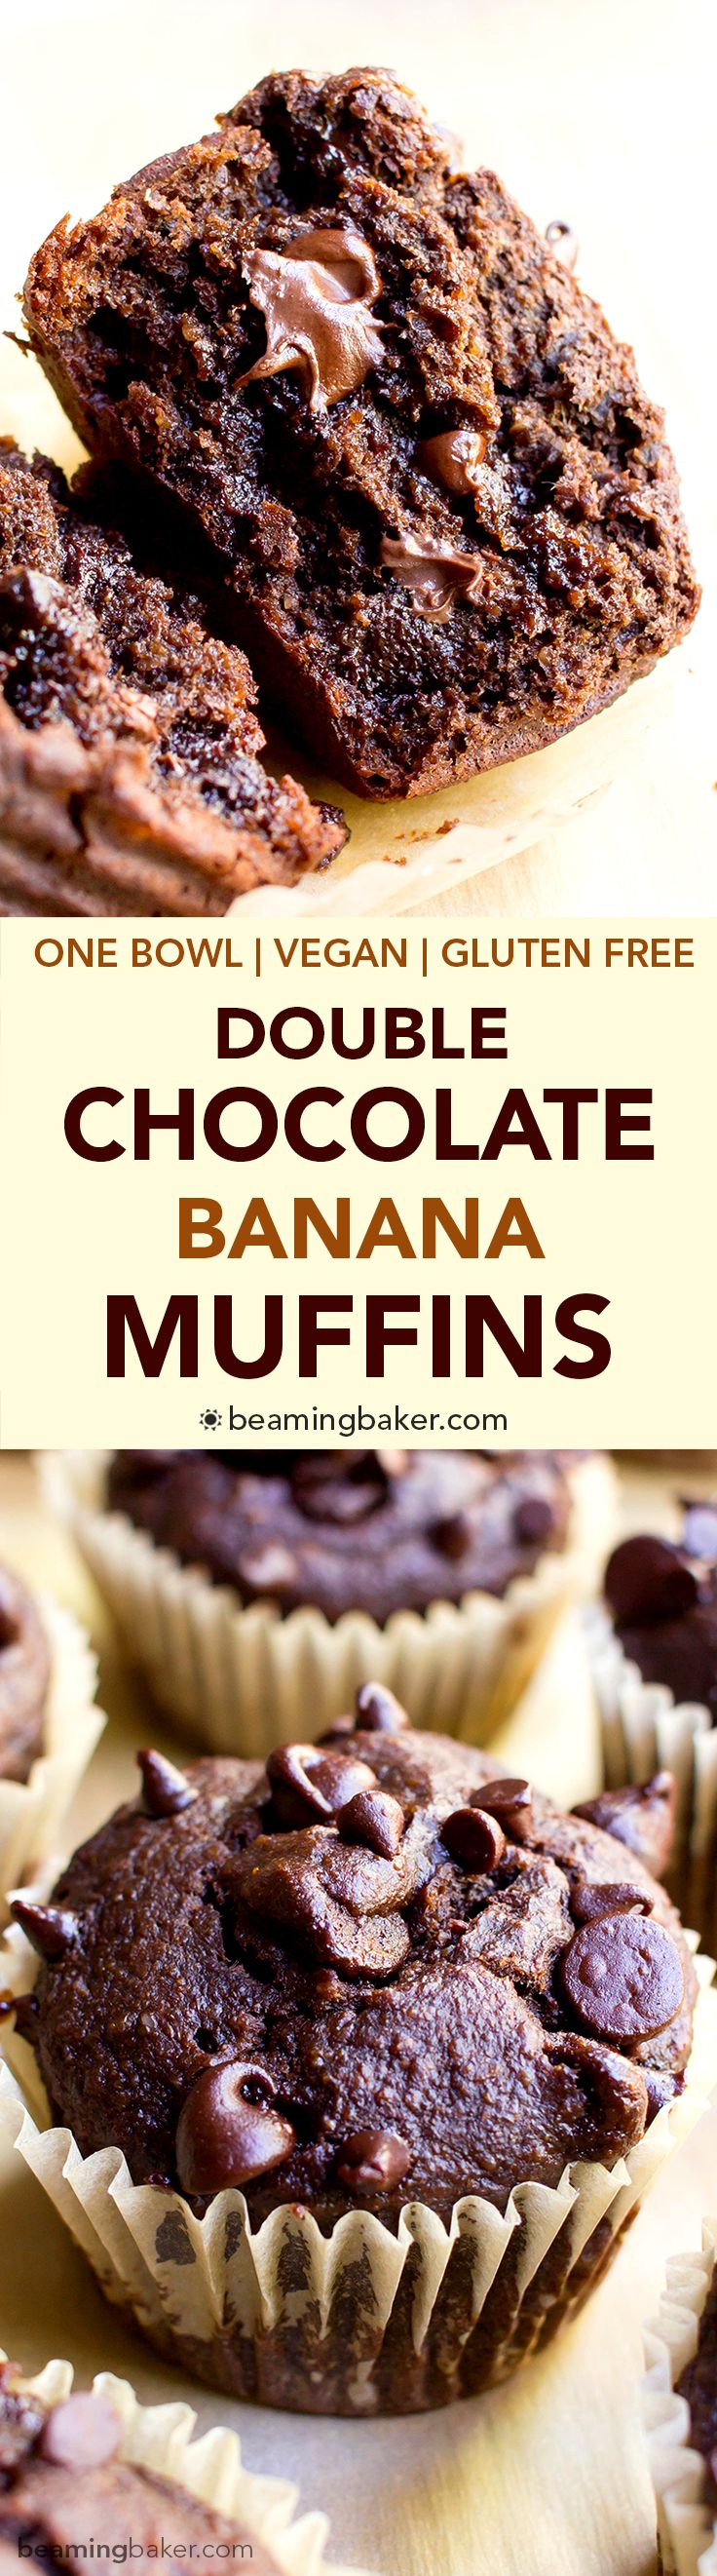 One Bowl Double Chocolate Banana Muffins (V+GF): a one bowl recipe for moist, rich chocolate banana muffins dotted with chocolate chips. Vegan, Gluten Free.